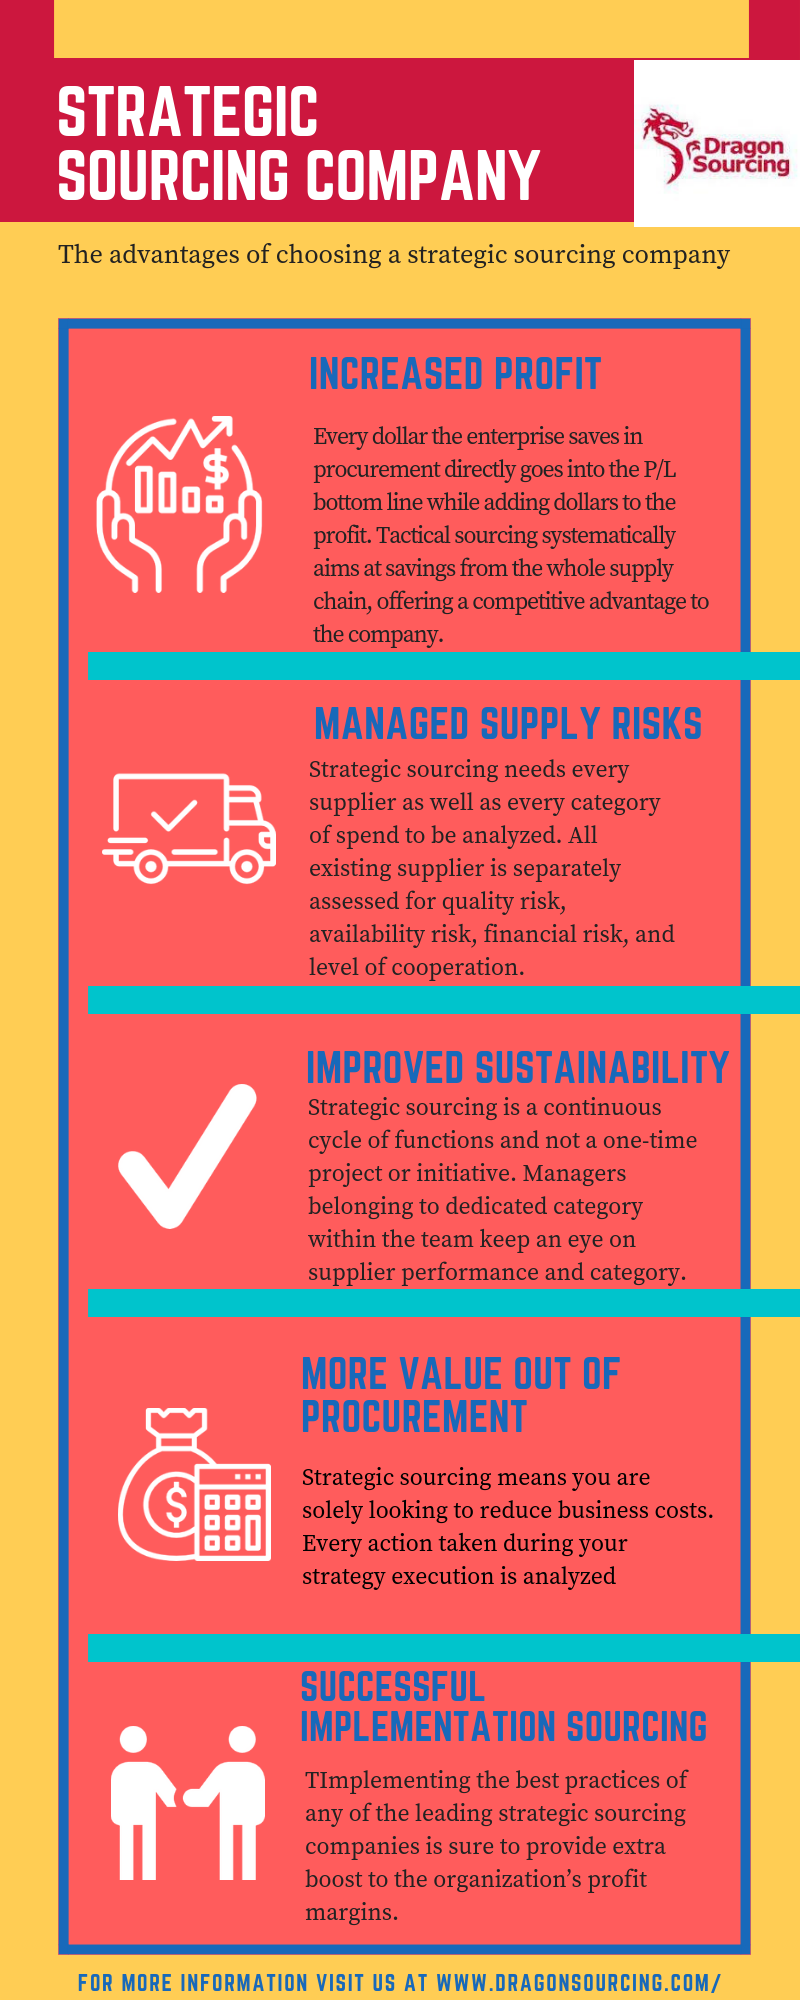 Dragon Sourcing Helps Organizations Leverage Their Supply Chain